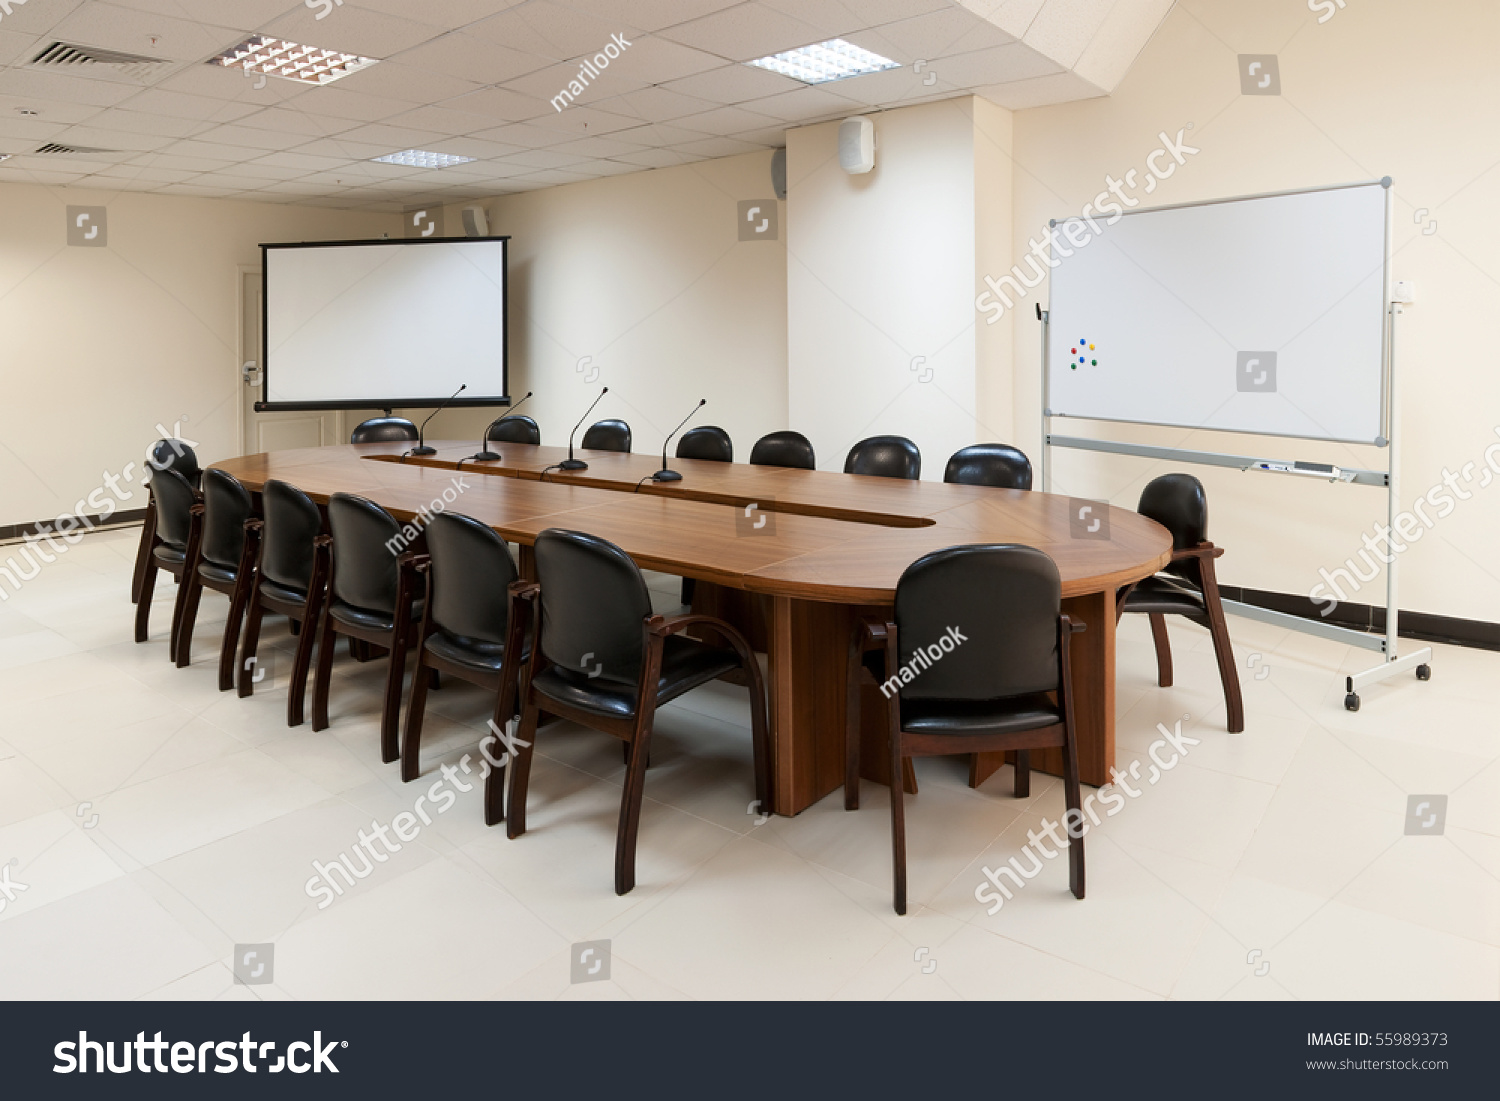 Big Round Table For Conference, Meeting Or Seminar